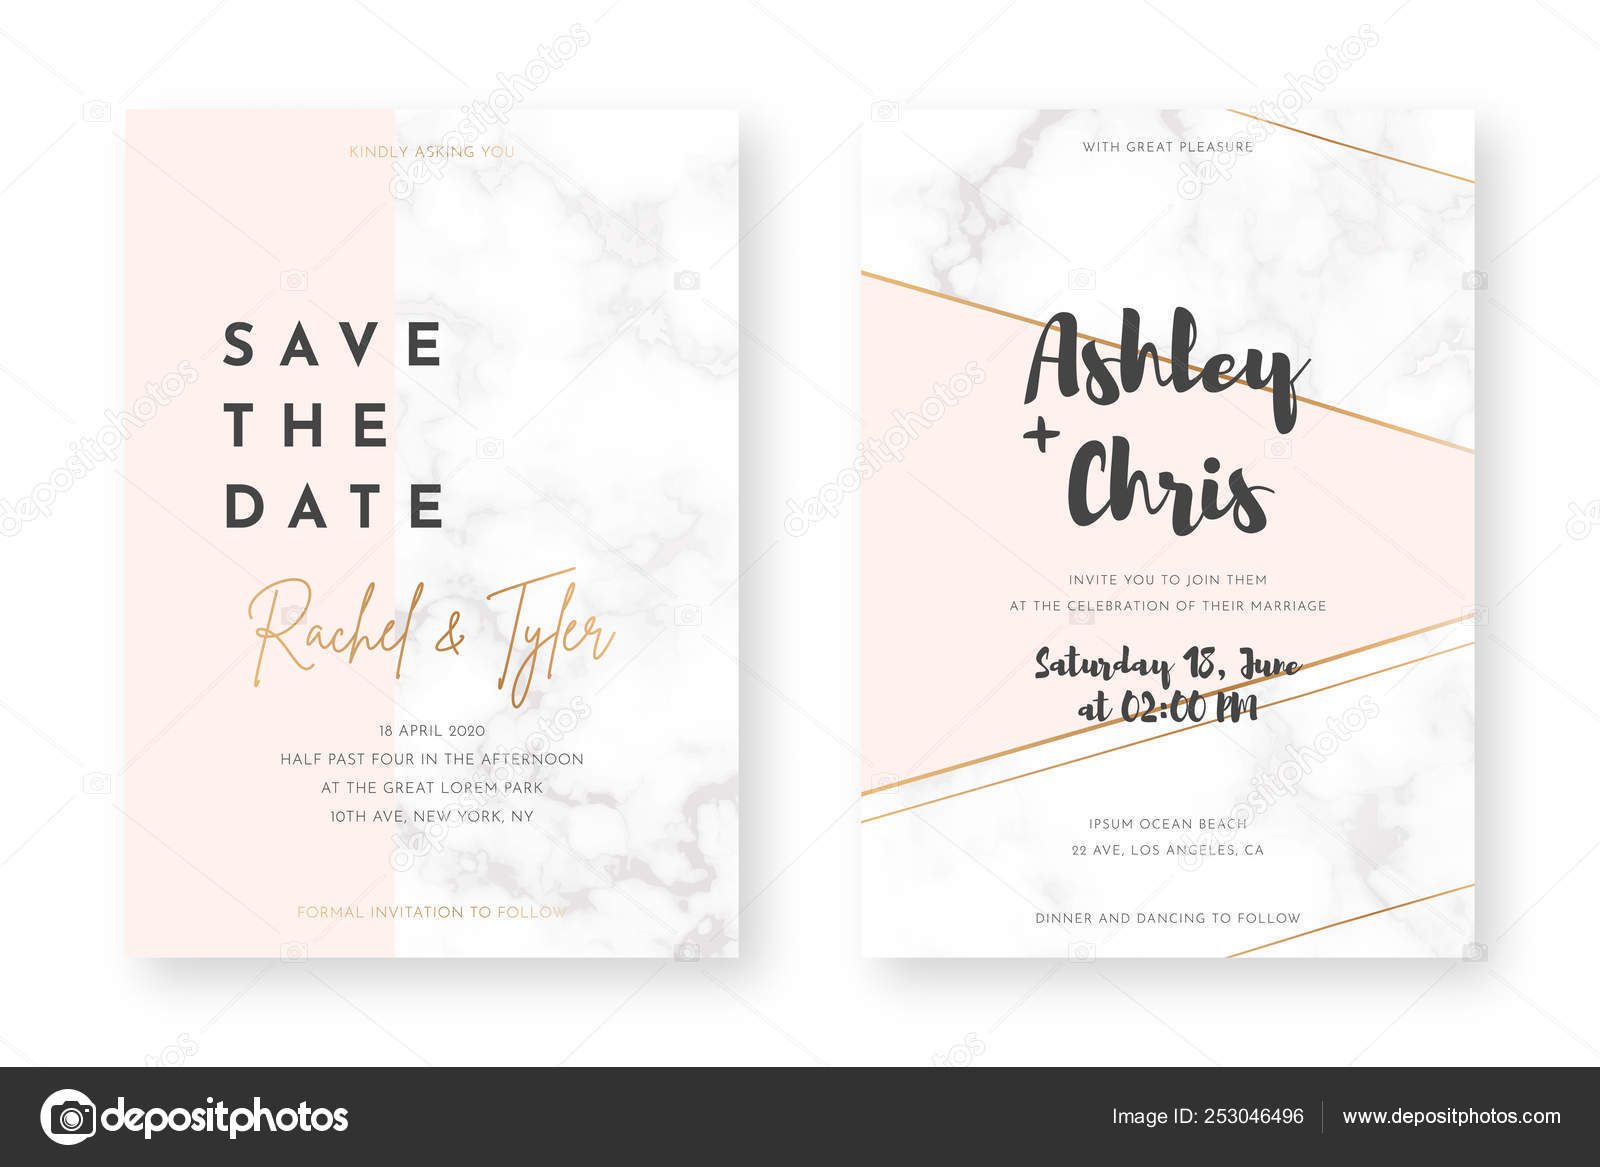 Wedding Card Design With Golden Frames And Marble Texture